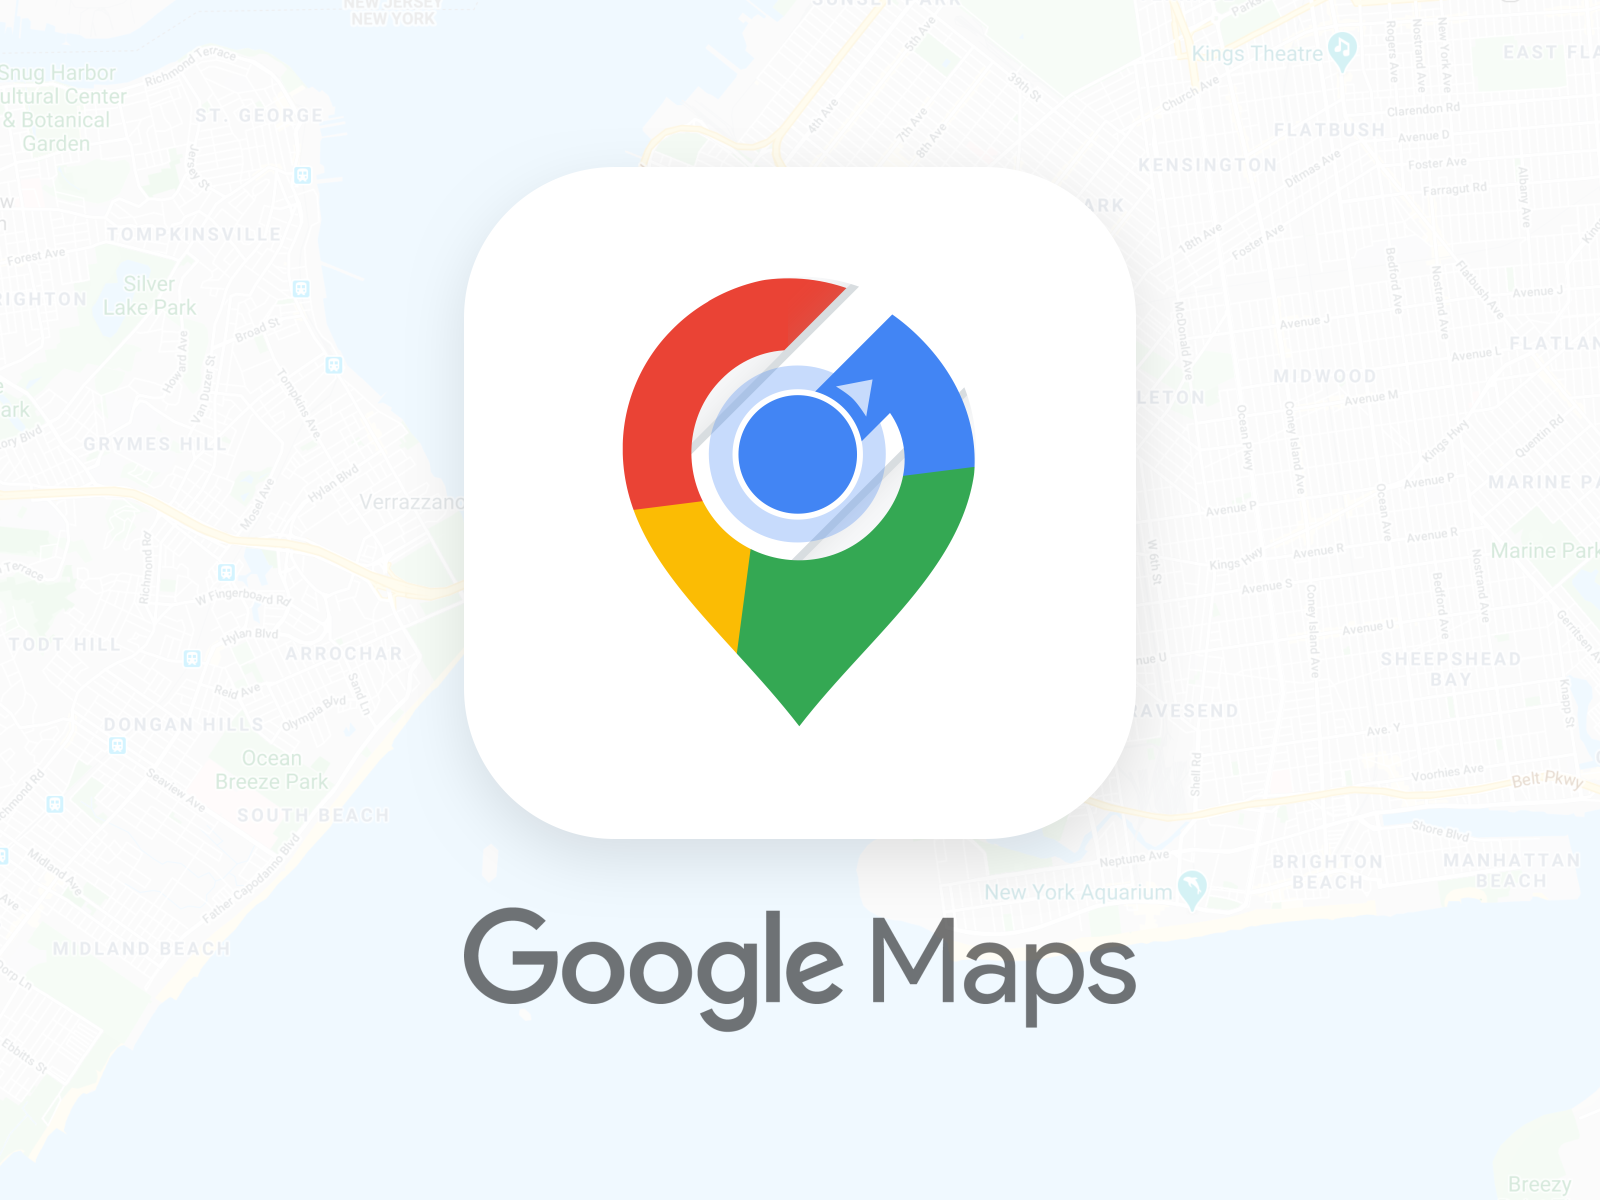 Daily Ui 005 Google Maps App Icon Redesign By Prateek Mehra On Dribbble